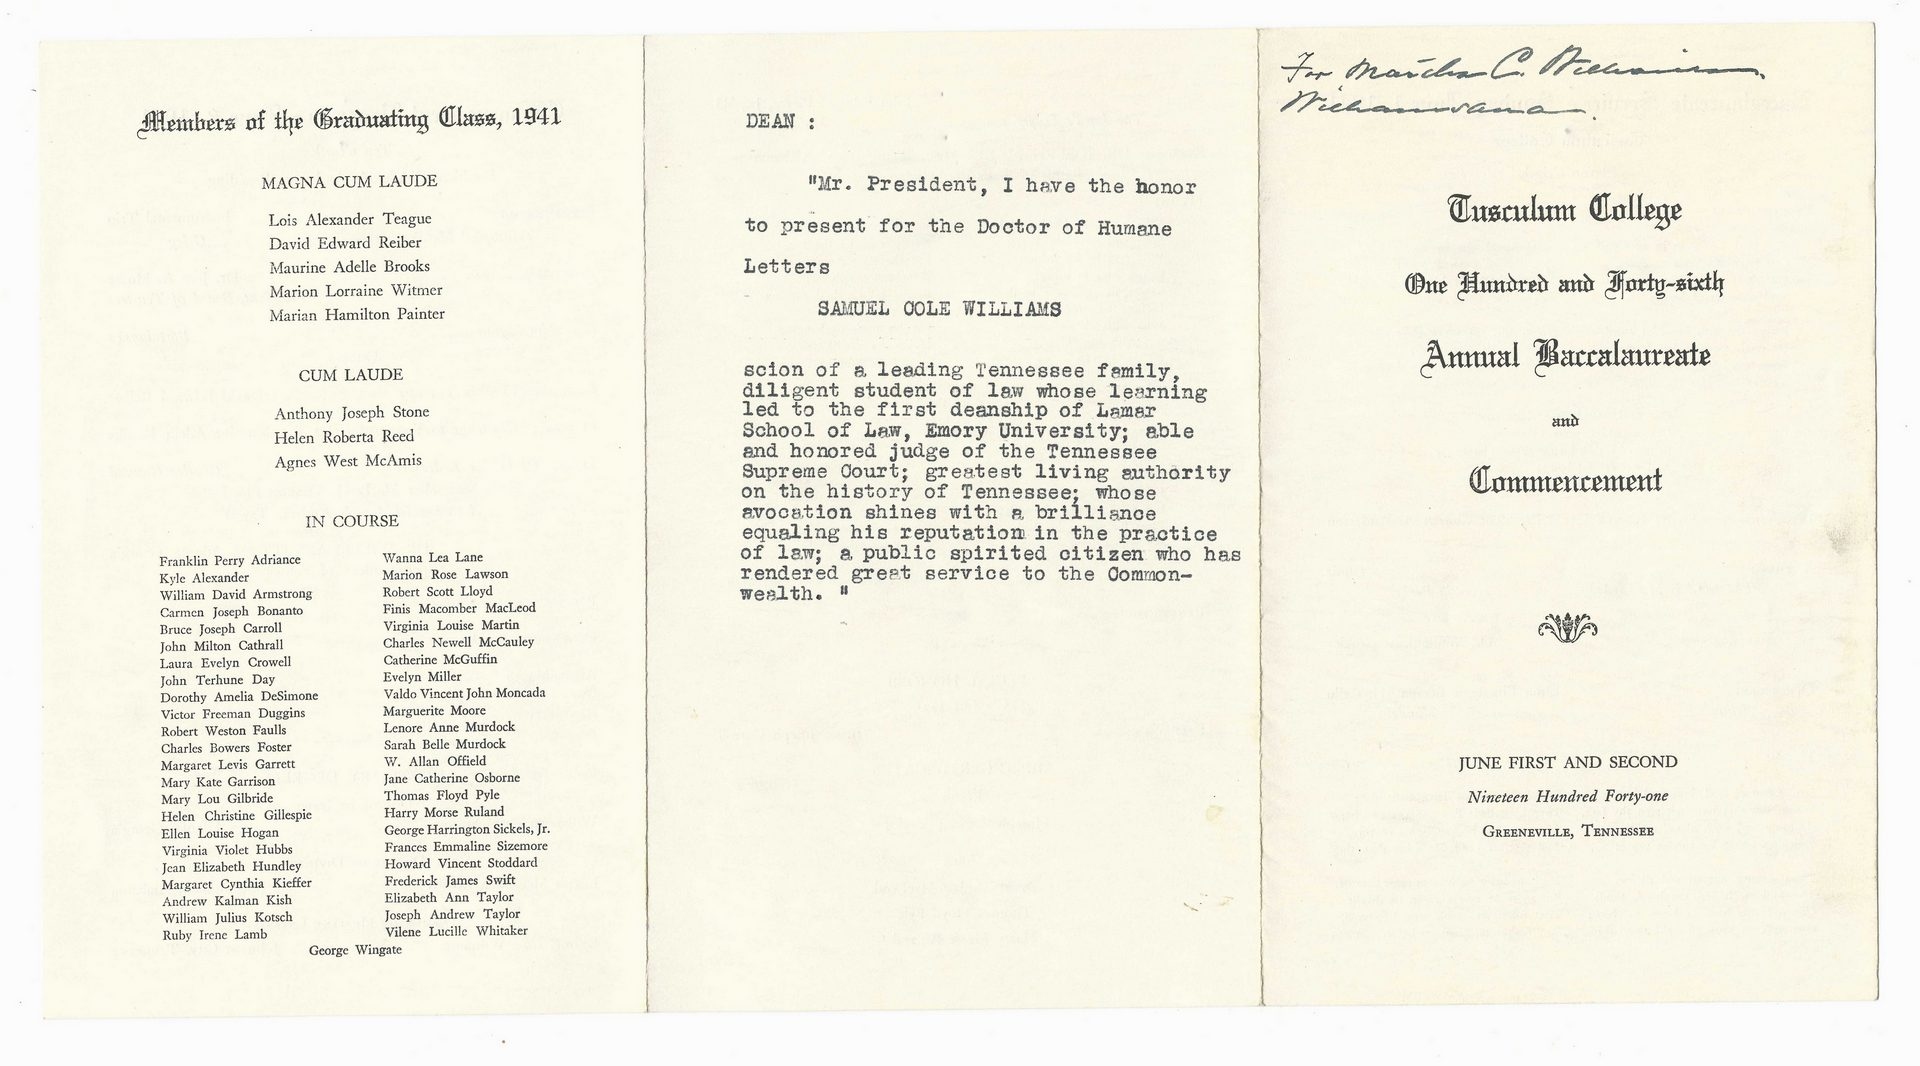 Lot 768: Samuel C. Williams Archives, Tennessee Related Papers & Ephemera